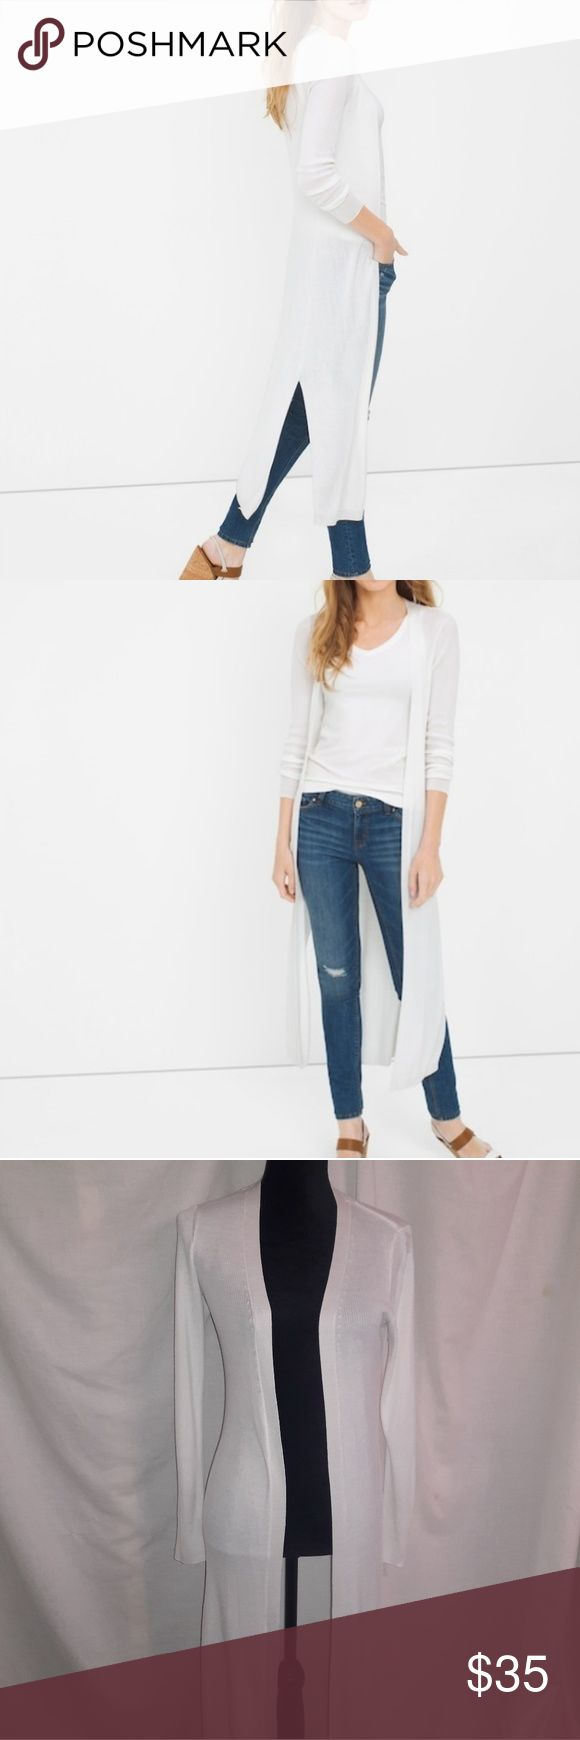 WHBM White Long Duster Cardigan S Ribbed Size Small White House Black Market brand duster, solid white in color. Open front, 1 slit on each side at the bottom. Lightweight, ribbed material. In good used condition with no major flaws, rips or stains. All items are from a pet free, smoke free home and will ship same or next day. White House Black Market Sweaters